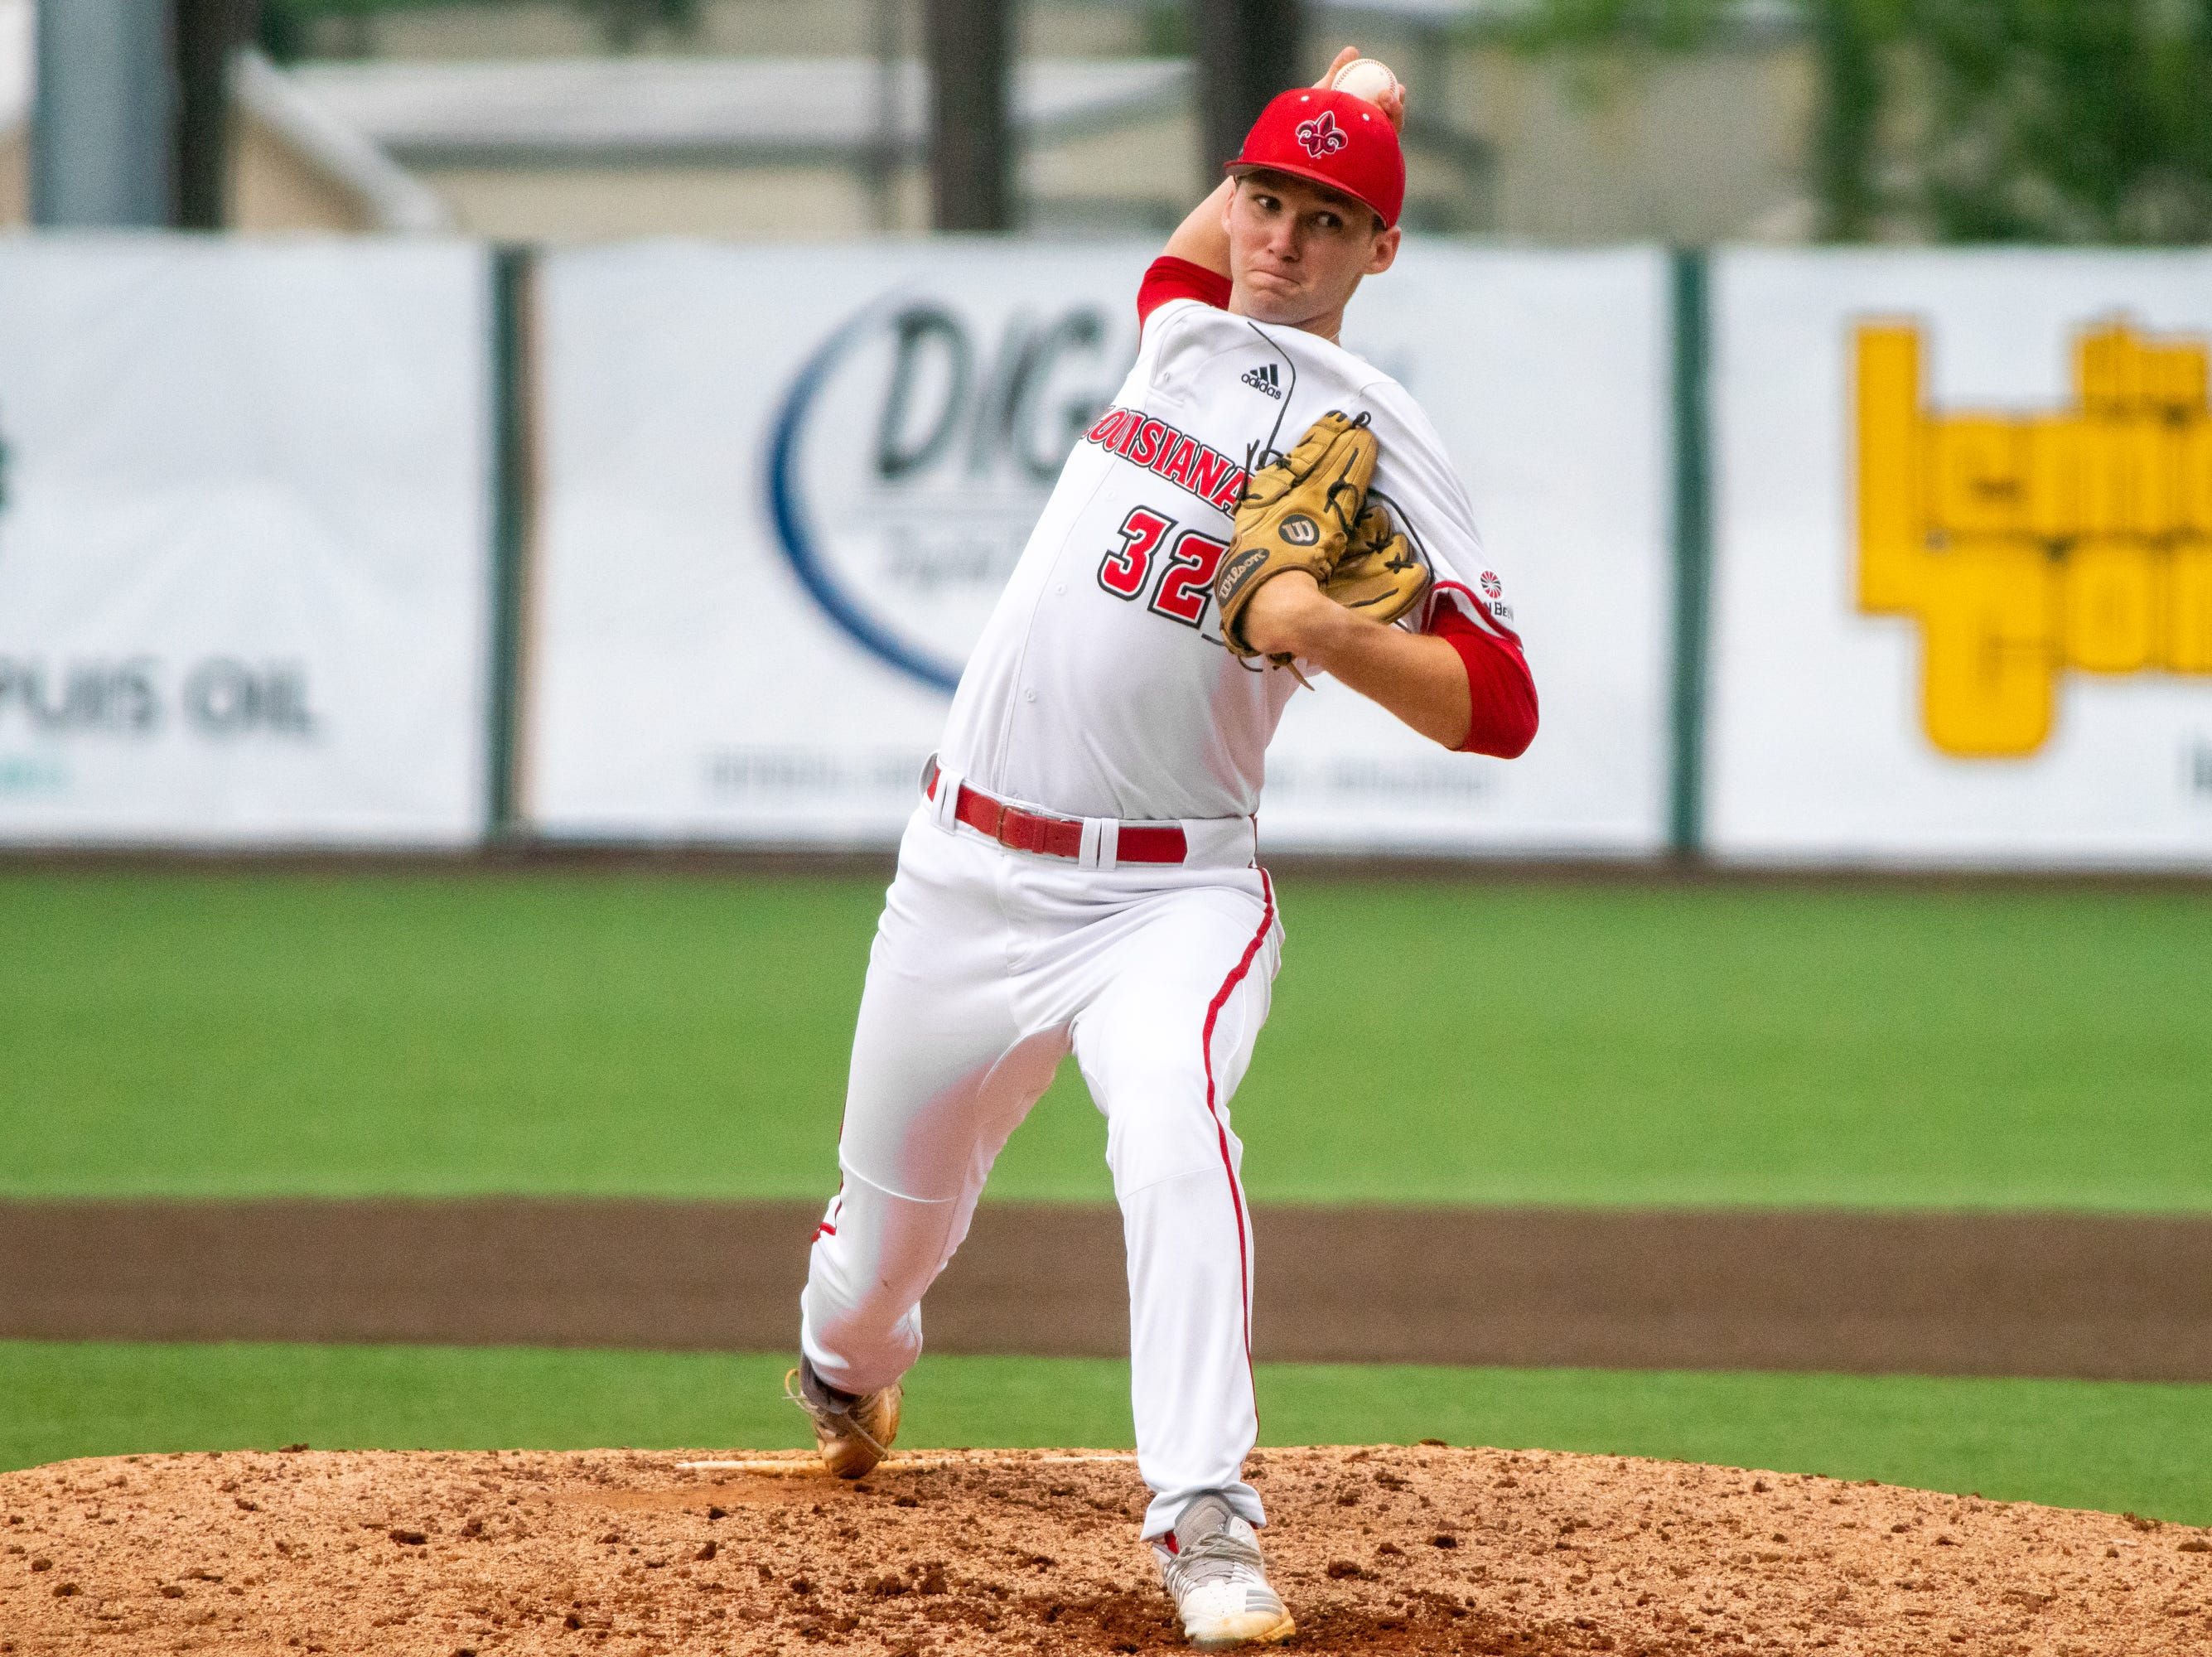 """UL's Brandon Young winds up a throw to the batter as the Ragin' Cajuns take on the South Alabama Jaguars at M.L. """"Tigue"""" Moore Field on Saturday, April 13, 2019."""